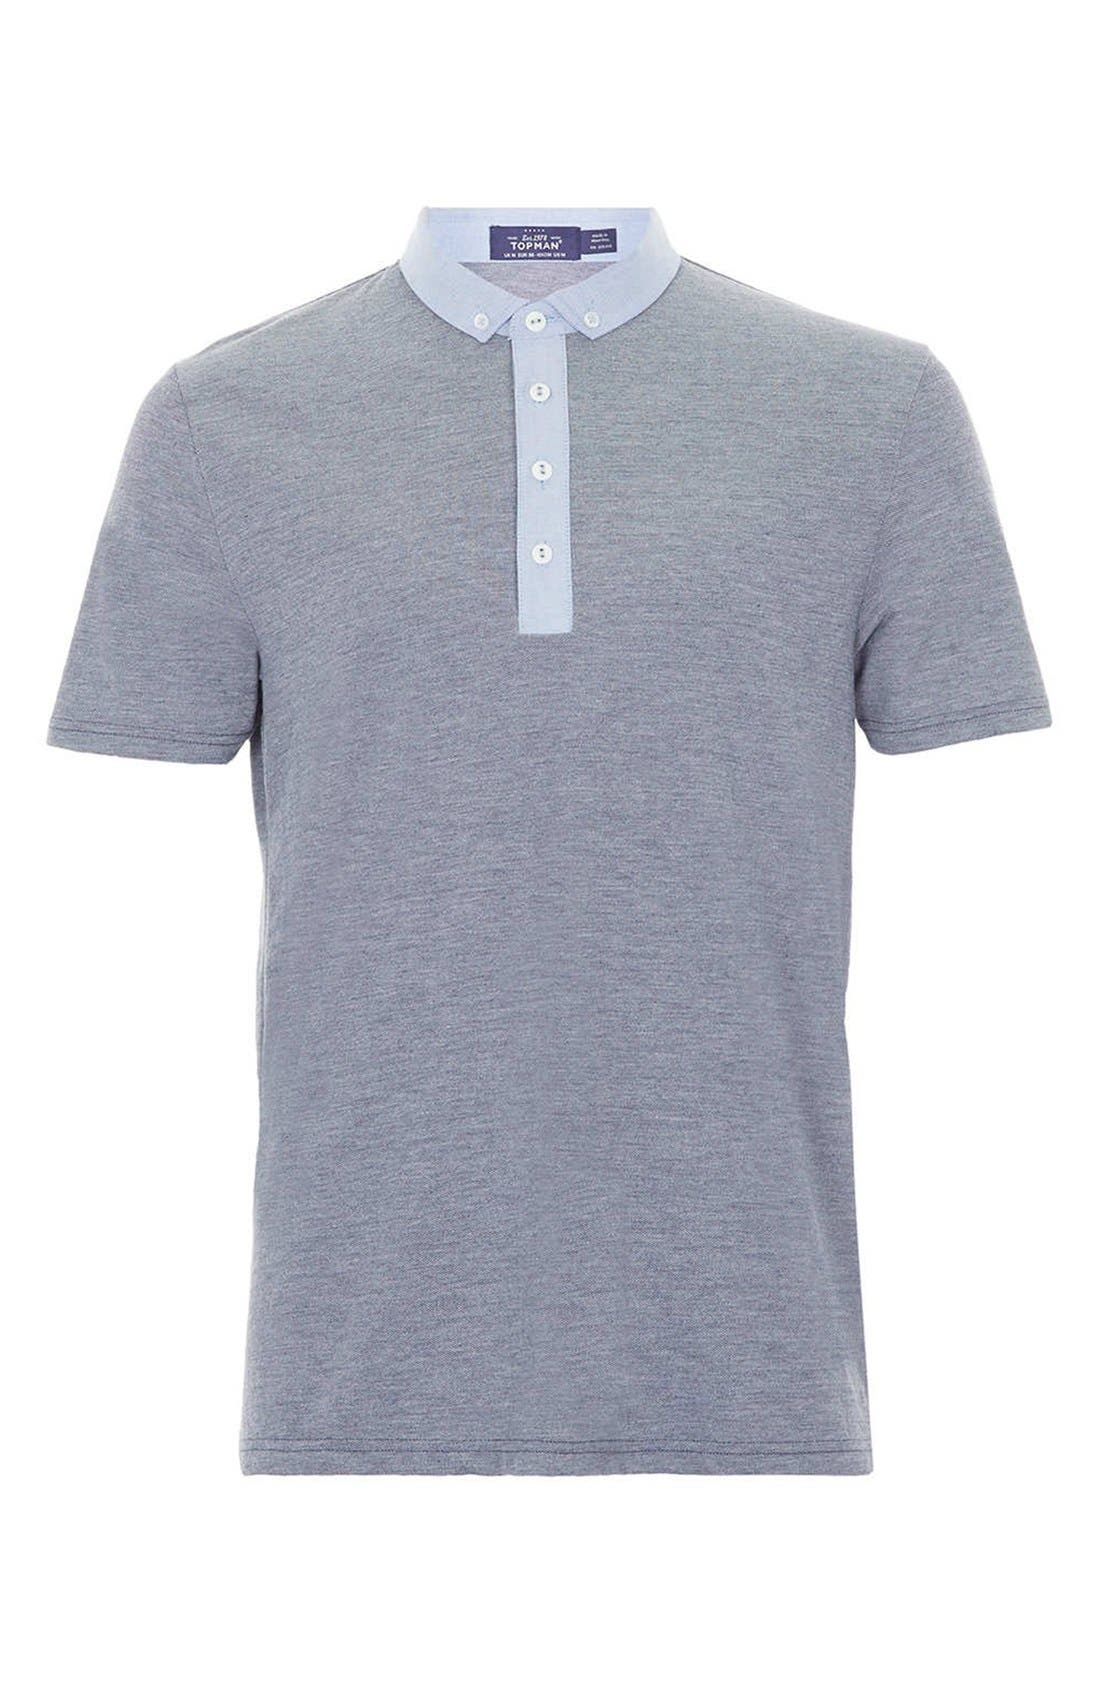 Alternate Image 1 Selected - Topman Chambray Trimmed Piqué Polo